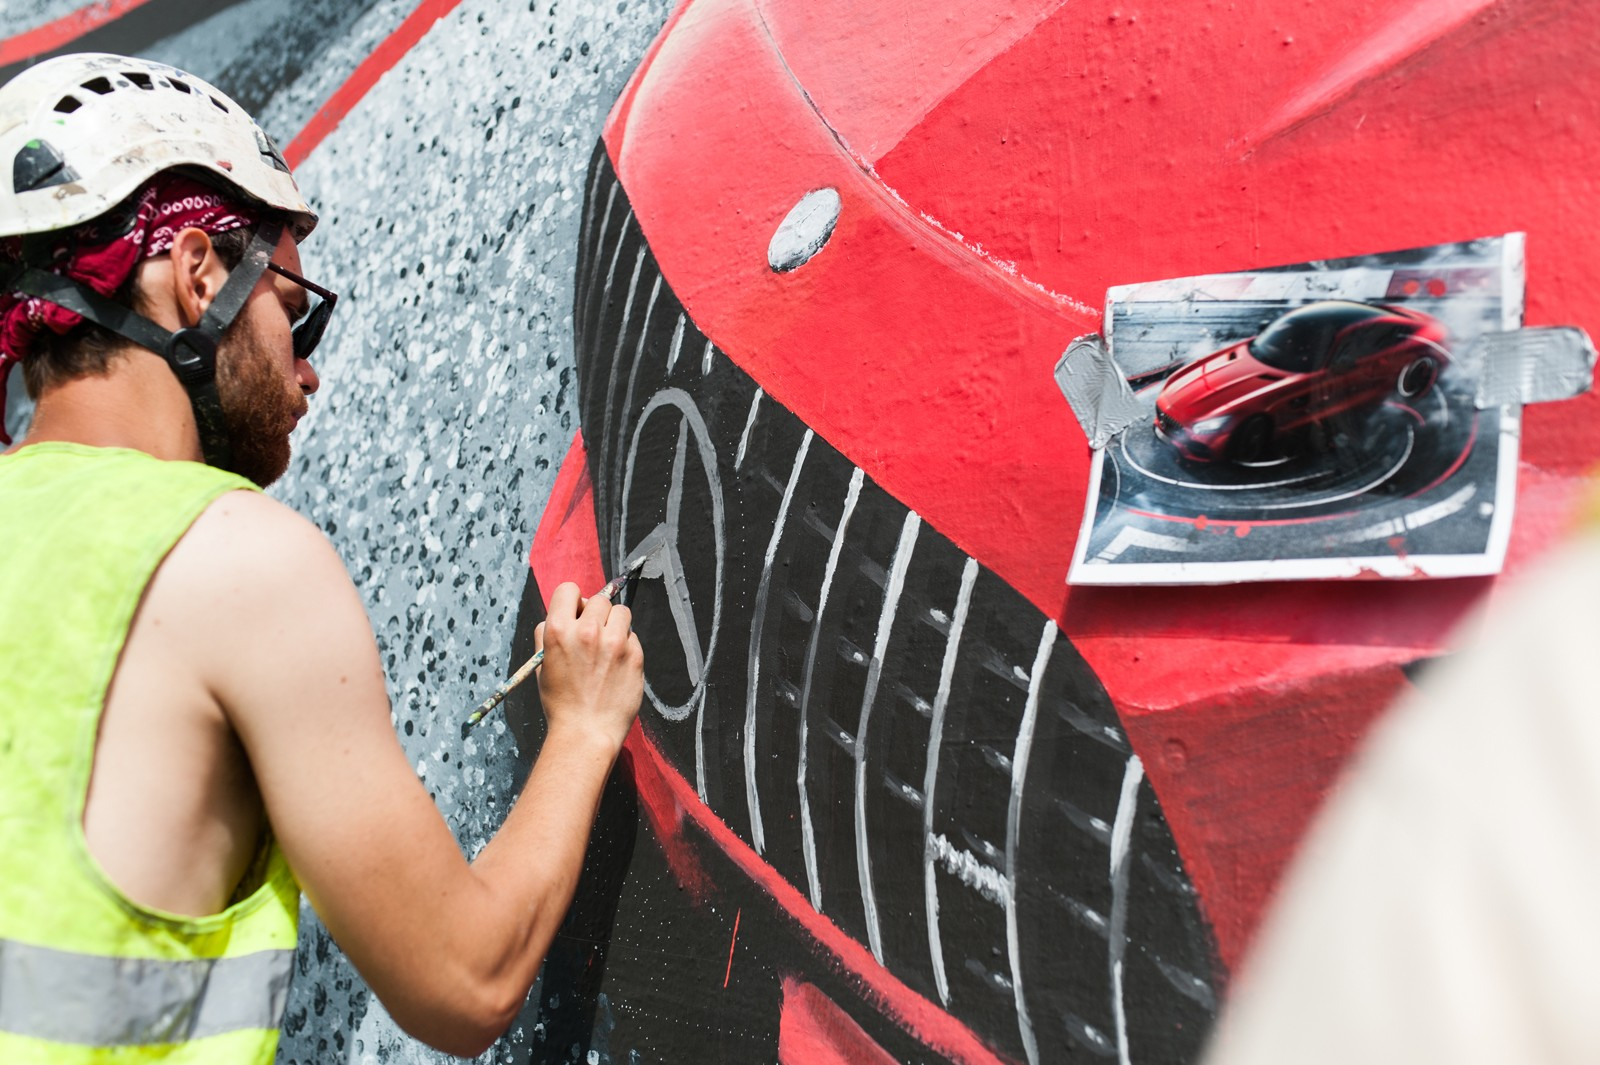 Artist painting a Mercedes AMG mural on Bracka street for Mercedes brand | Mercedes AMG | Portfolio